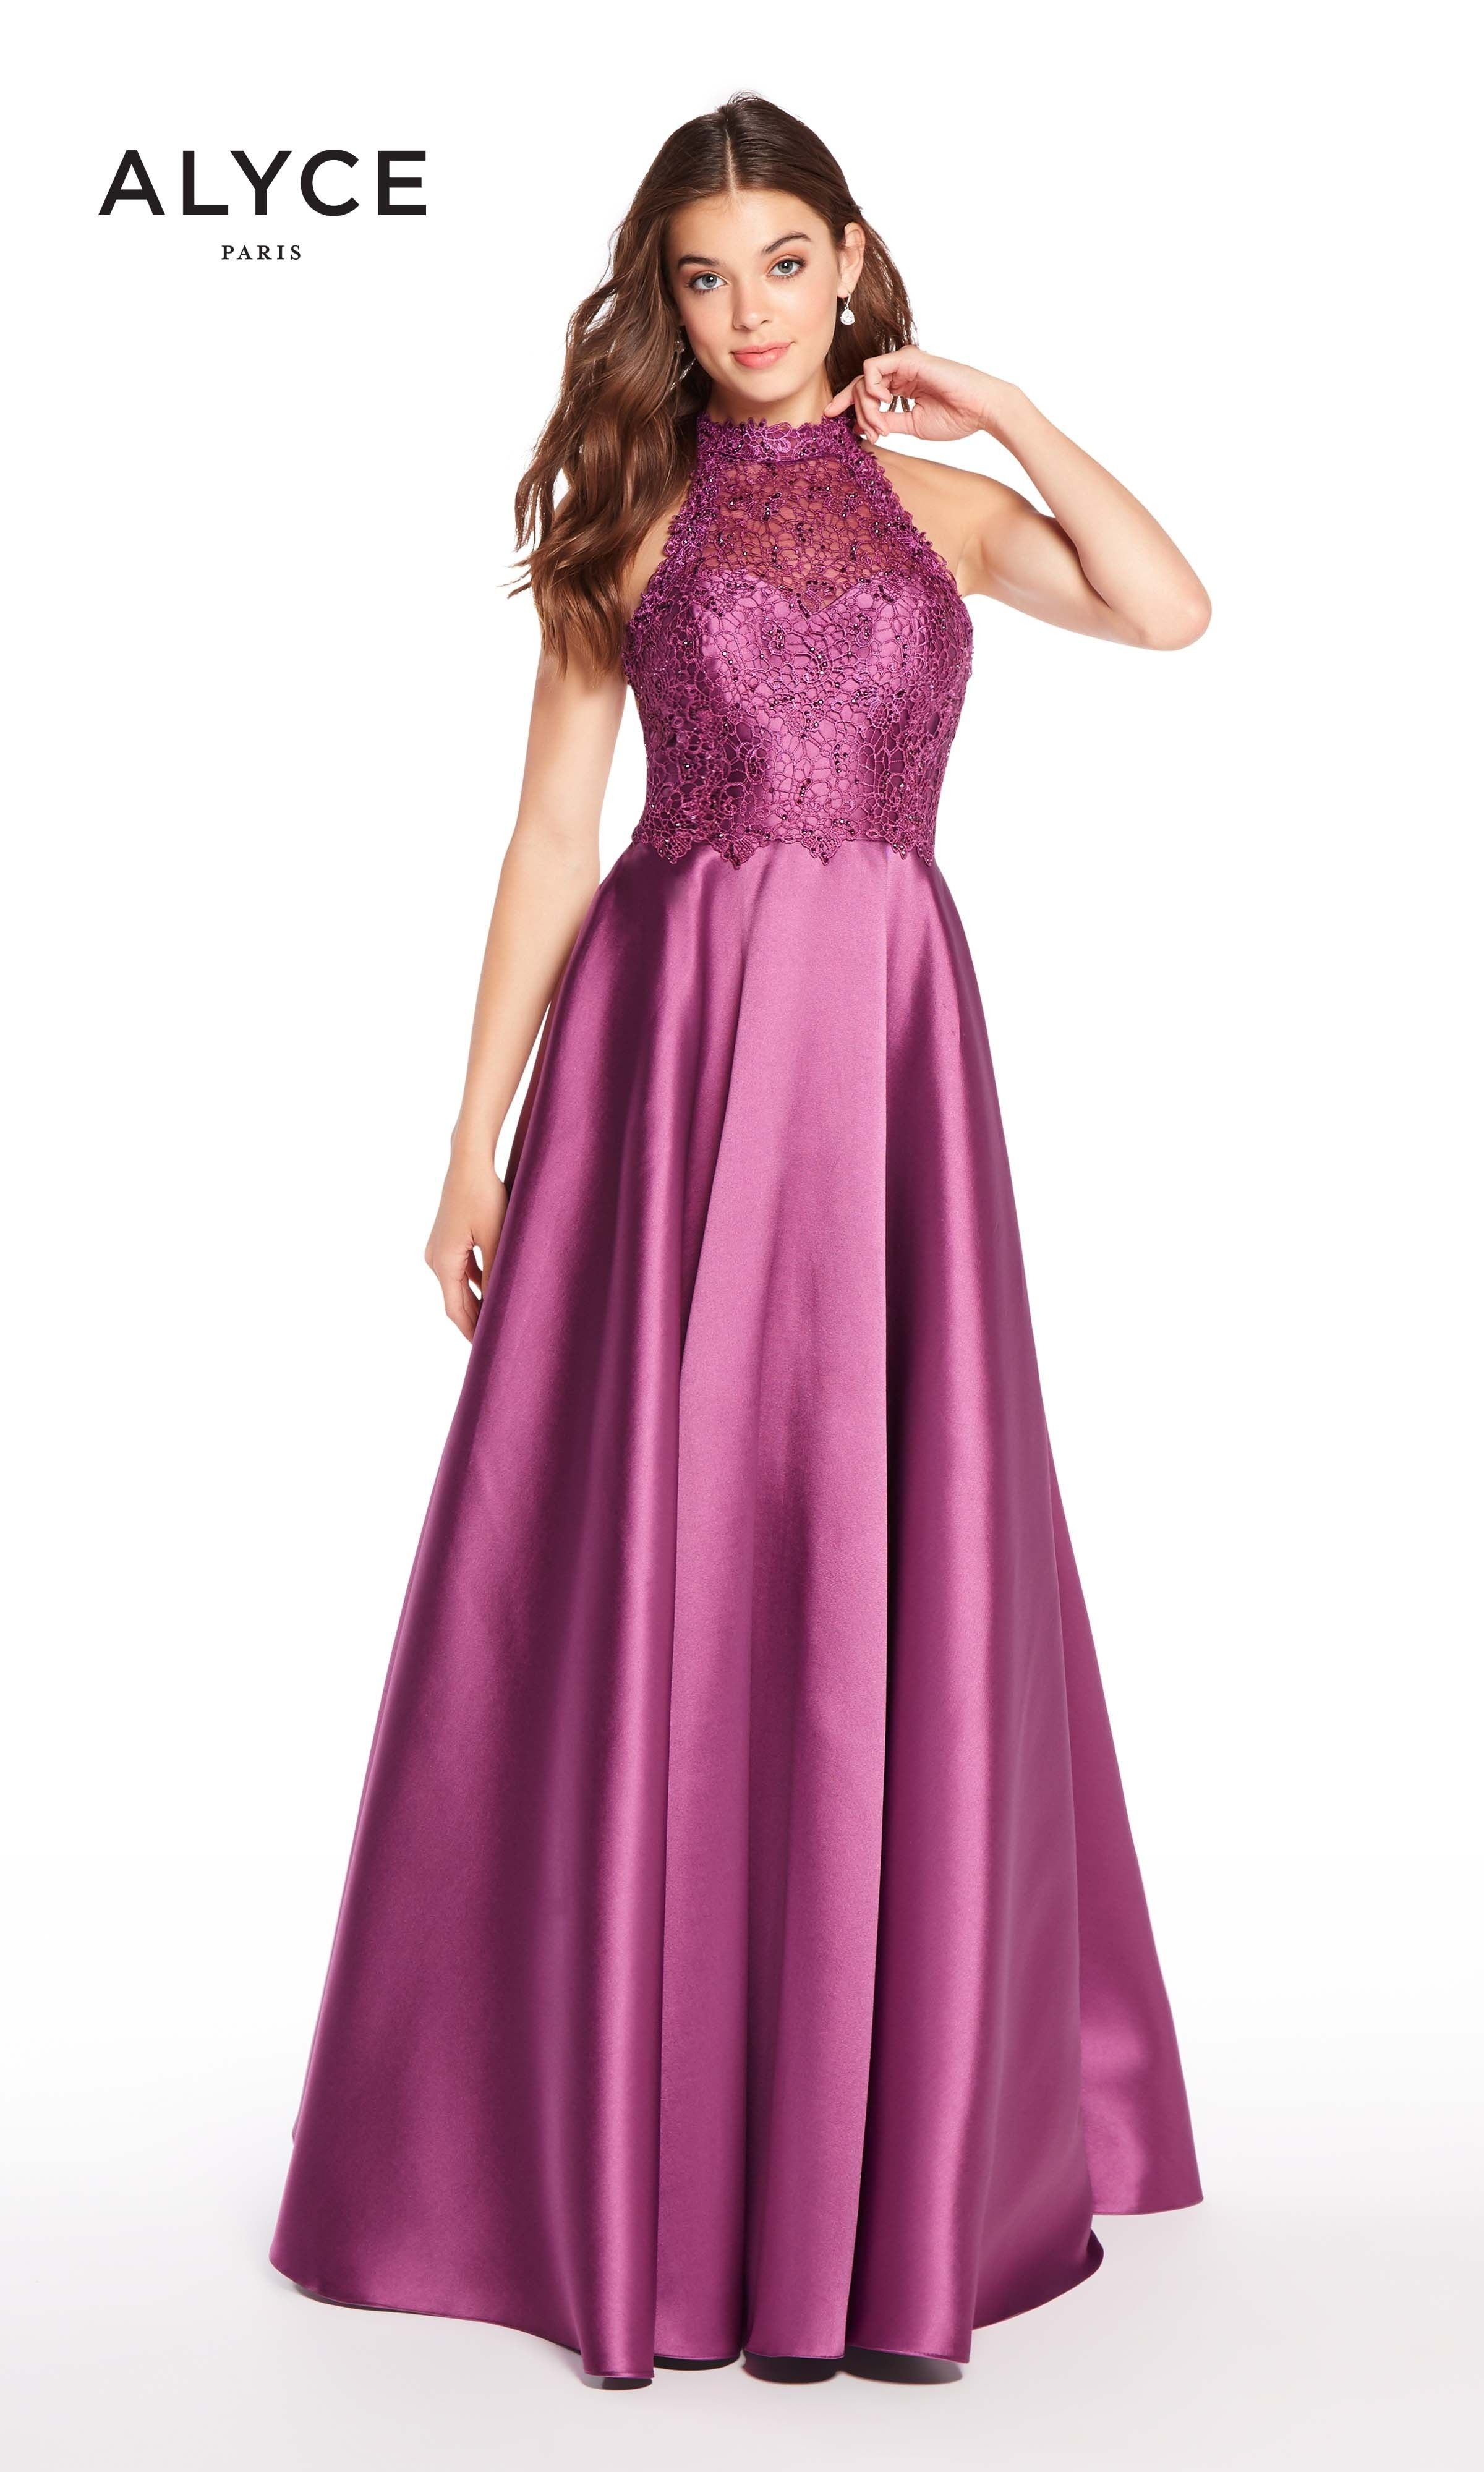 Alyce 60060 Mikado Racerback Halter A-line Dress | Halter gown, Ball ...